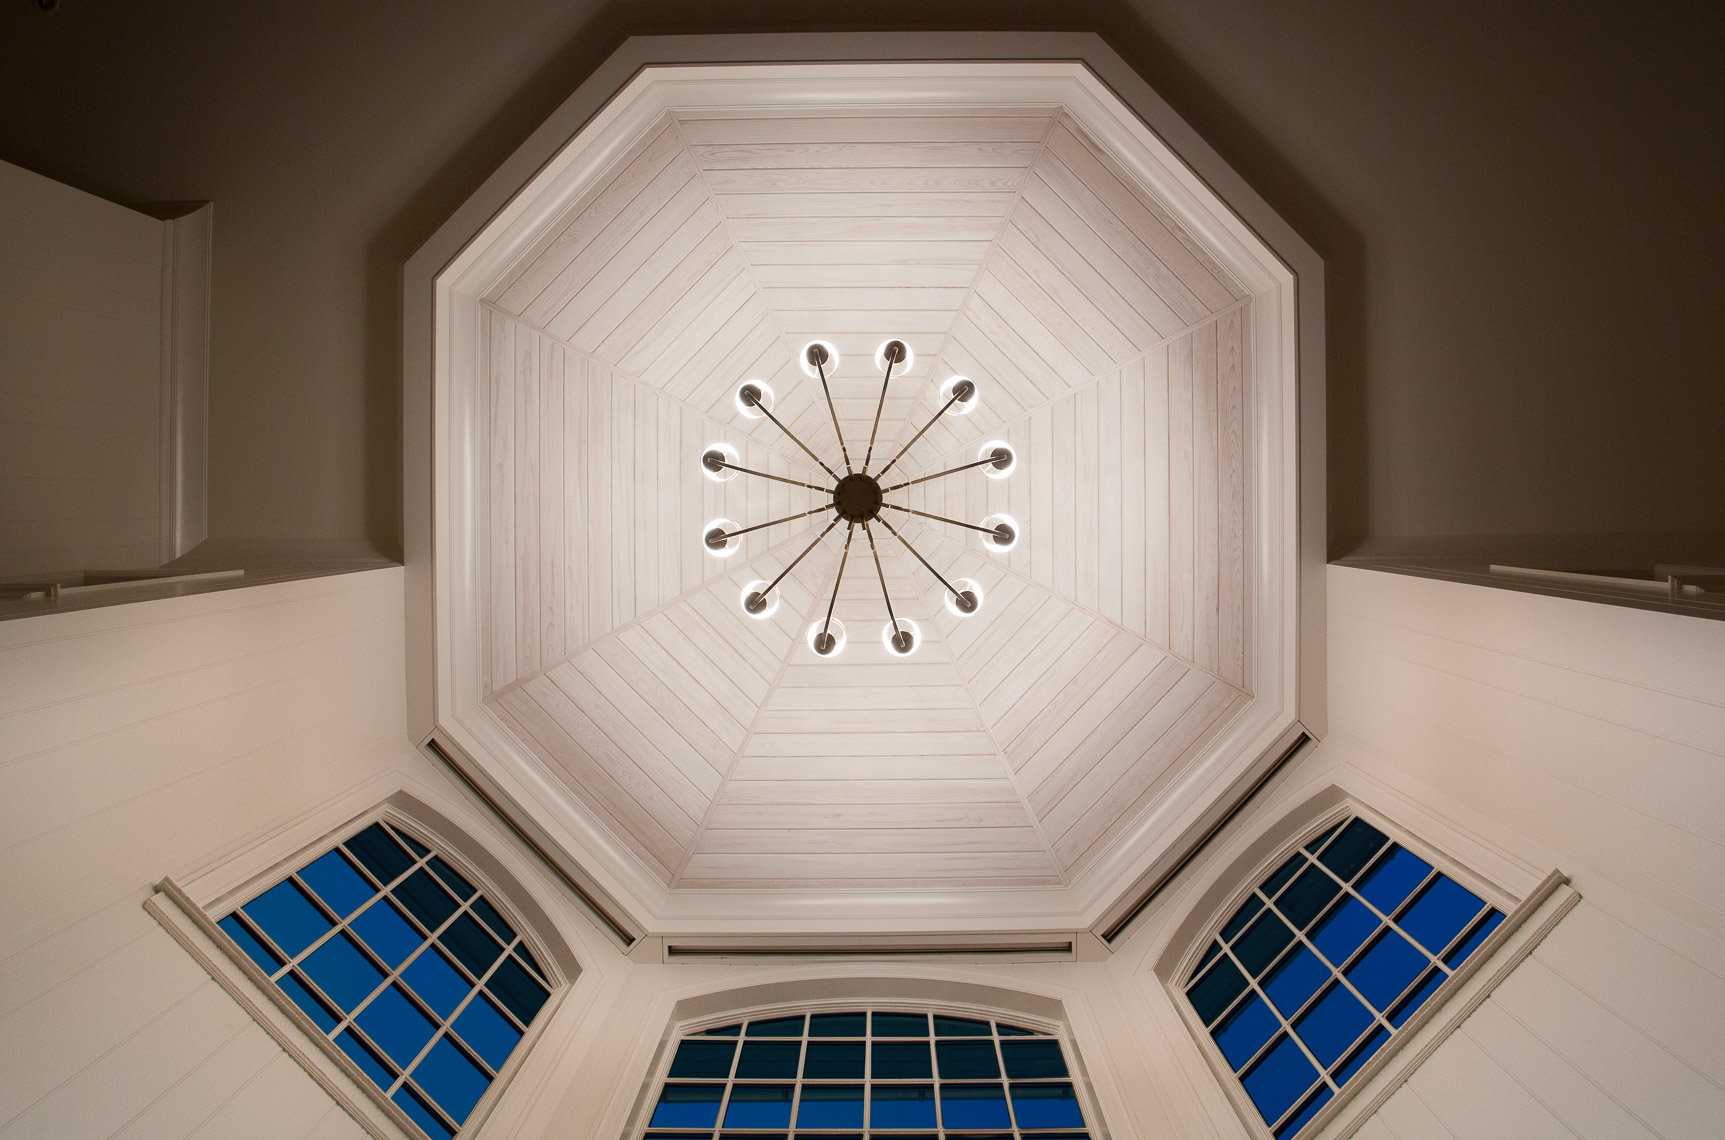 Ceiling Detail Detail - Mark Borosch Photography - Naples, FL